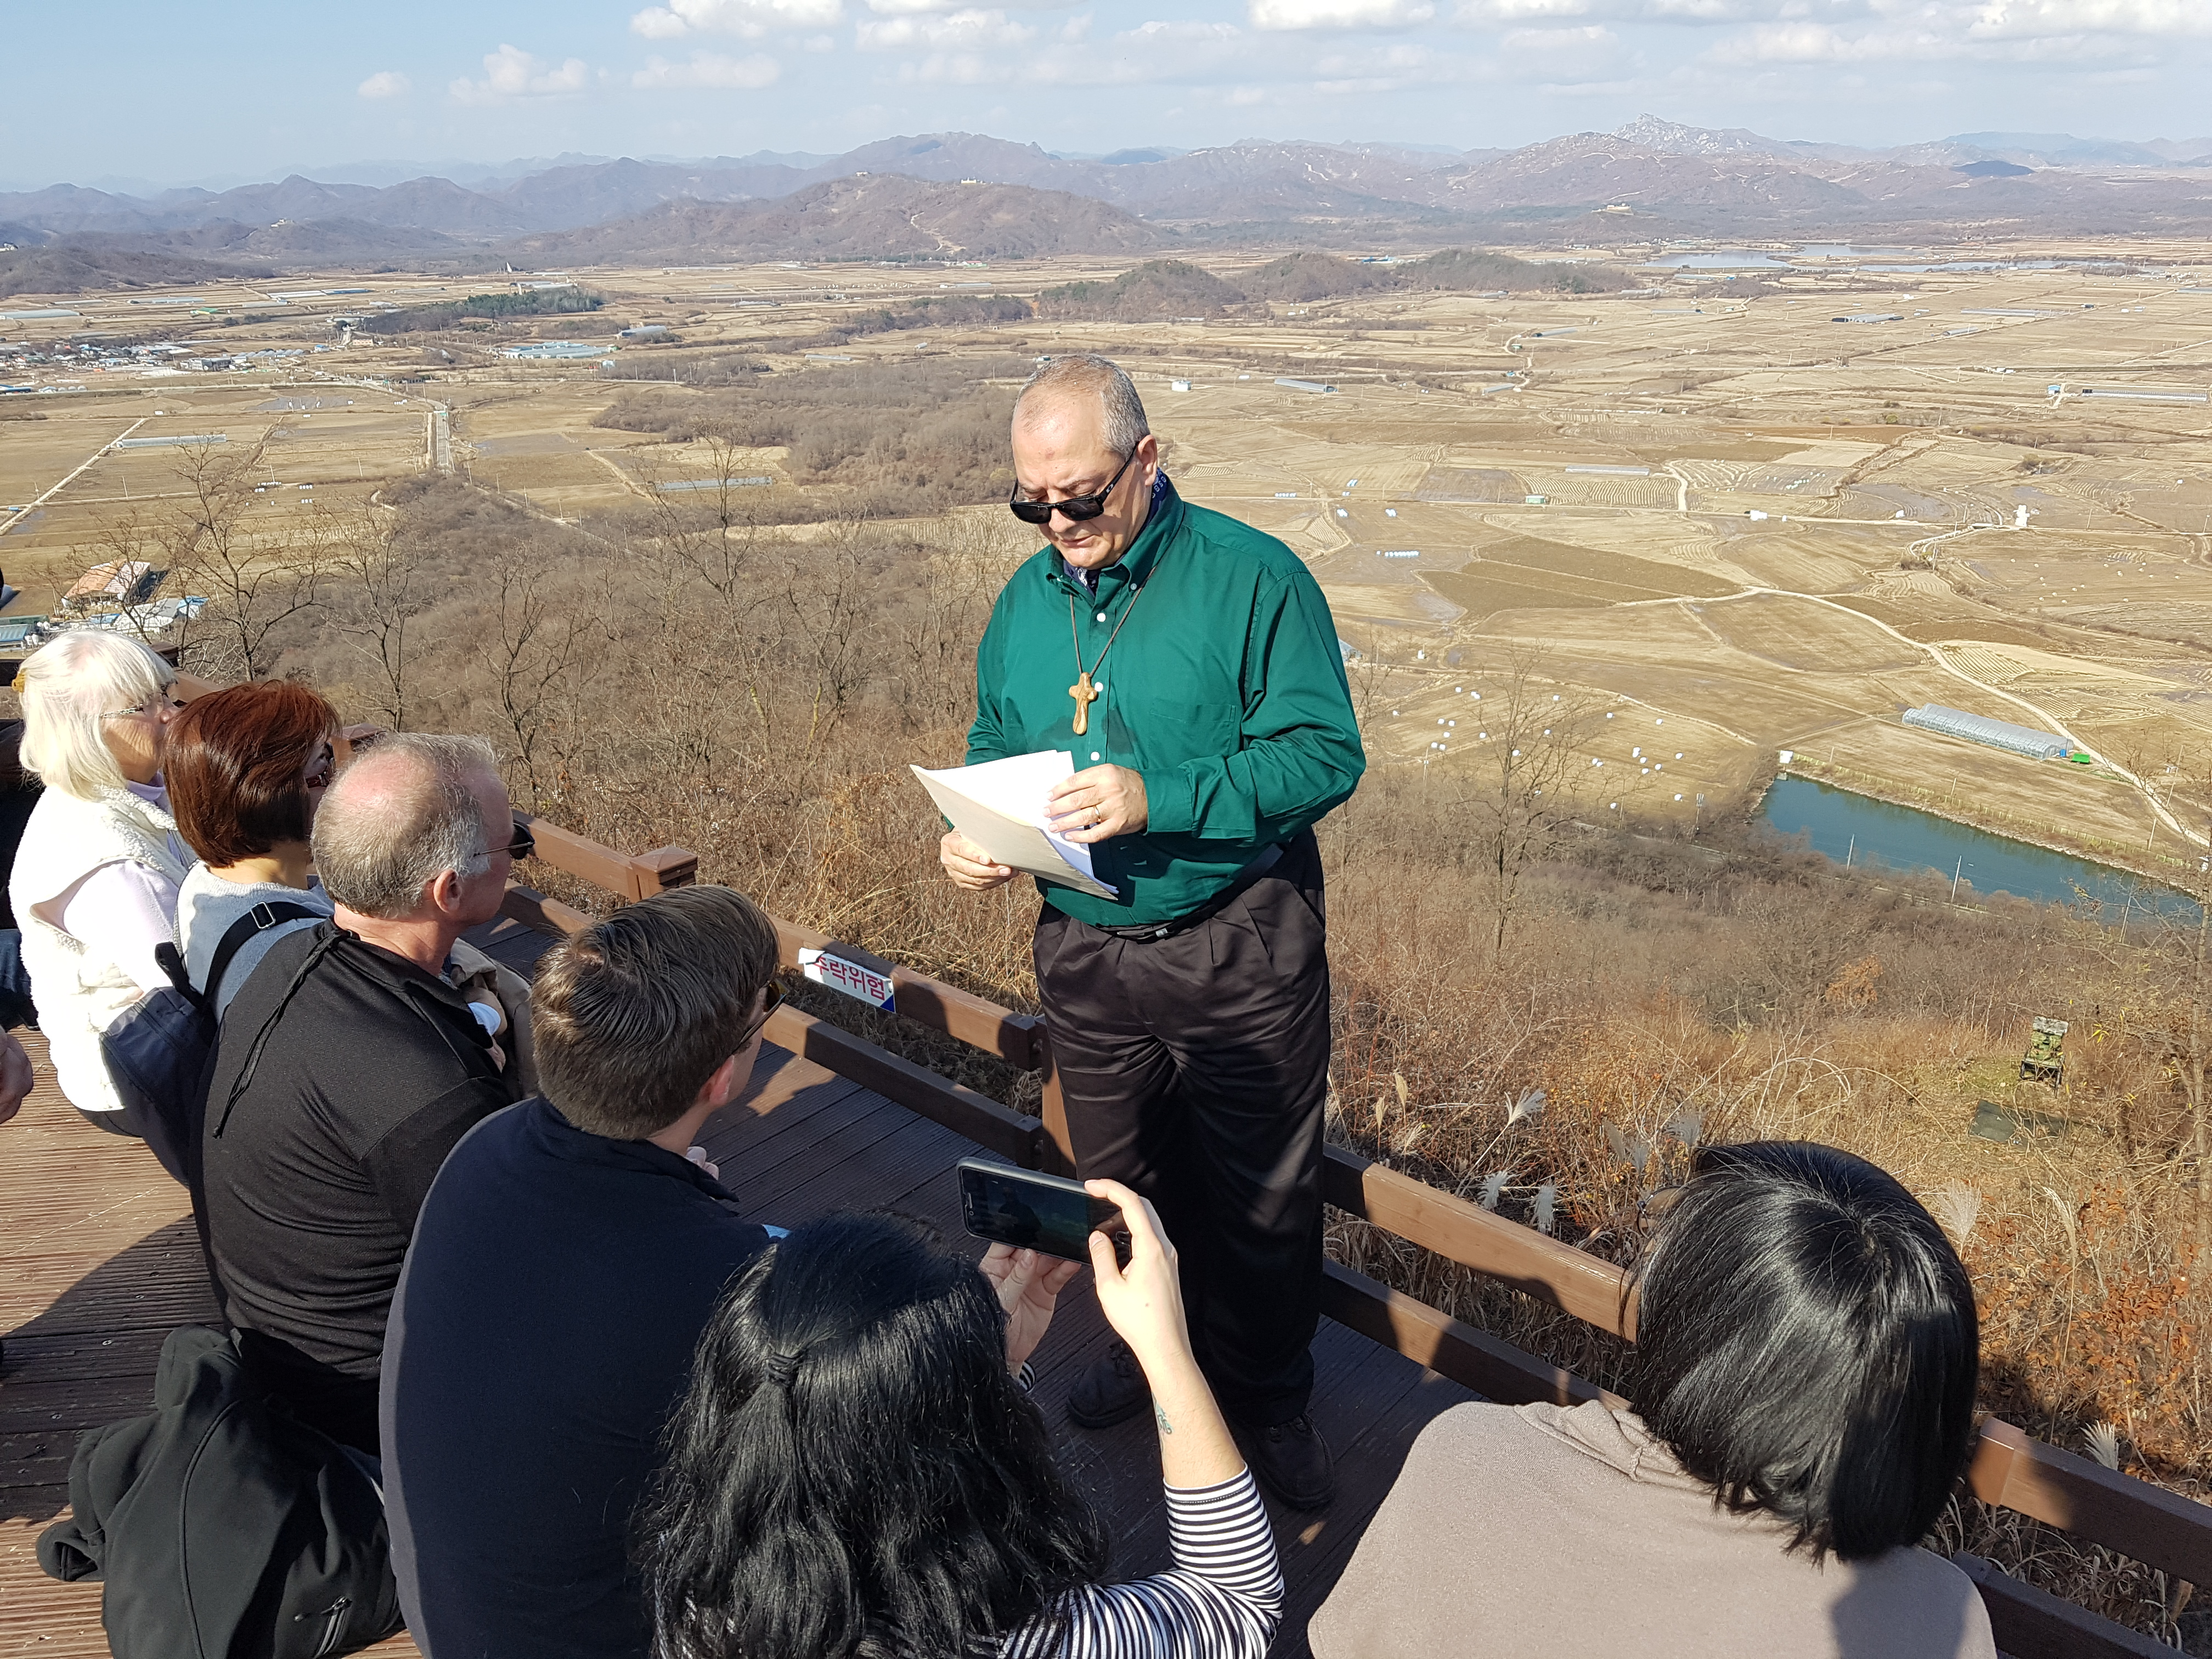 The Rev. Raafat Zaki leads a prayer at the top of Soi Mountain in South Korea at the DMZ border, with the mountains of North Korea visible behind him. (Photo by Kurt Esslinger)